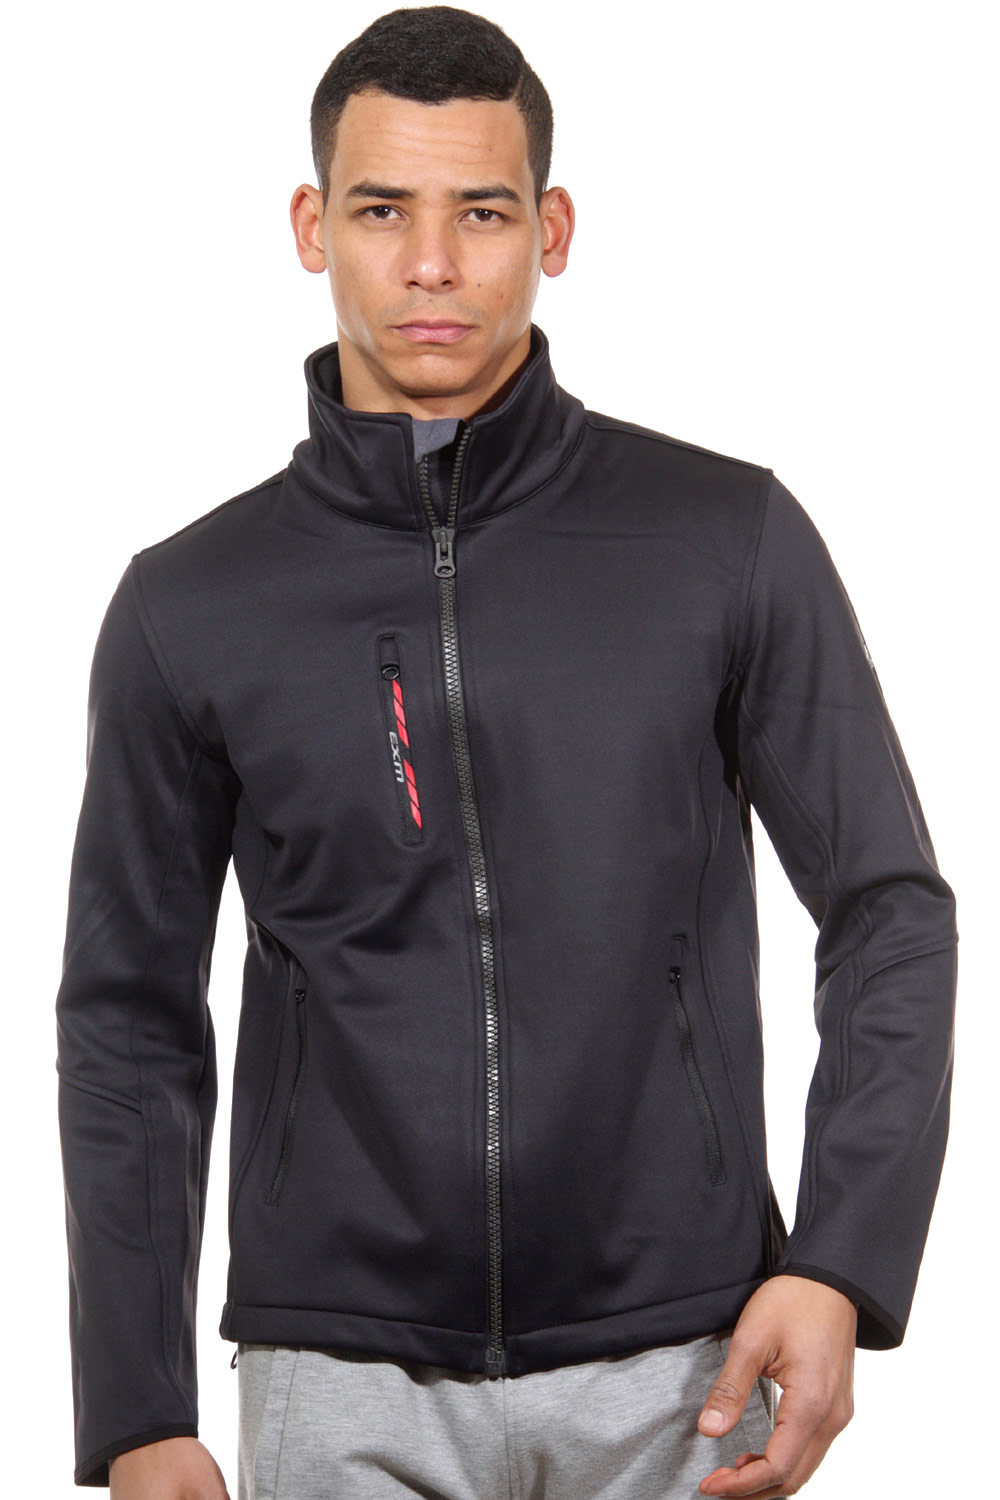 EXUMA ACTIVE softshell jacket with stand up collar slim fit at oboy.com